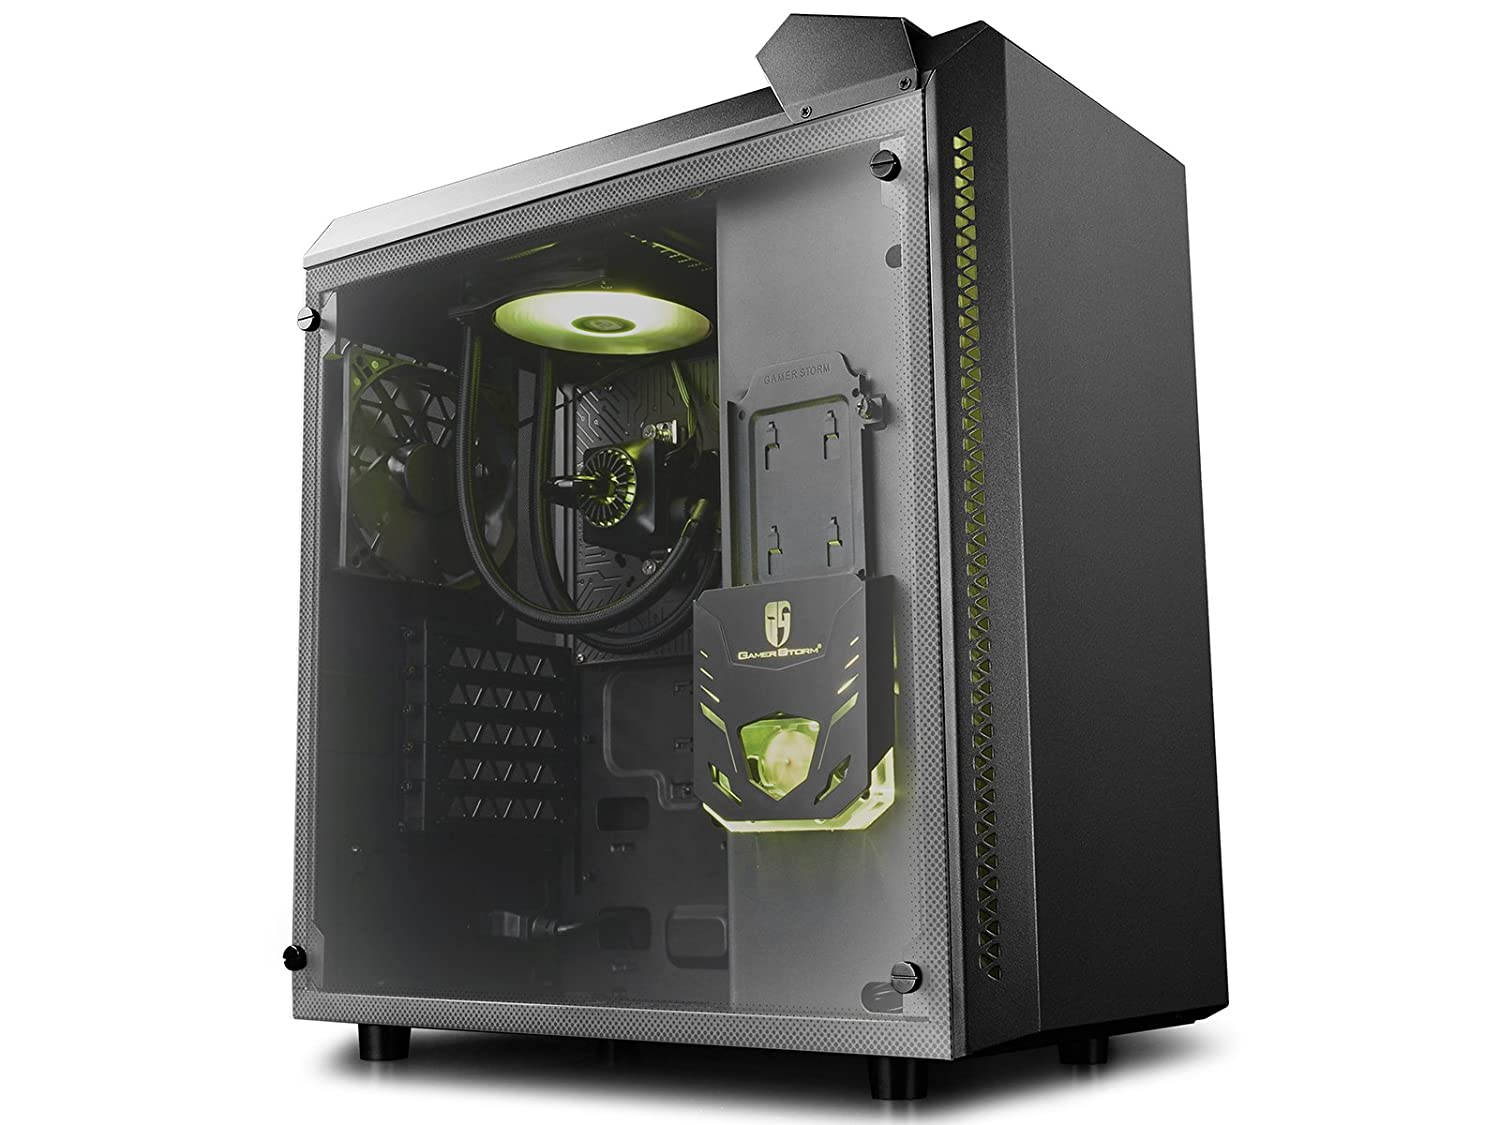 PRE-ORDER of DEEPCOOL BARONKASE LIQUID PC Case, MATX Size Supports ATX Motherboard, Pre-installed Integrated Liquid Cooling RGB System with 120mm Radiator, ...